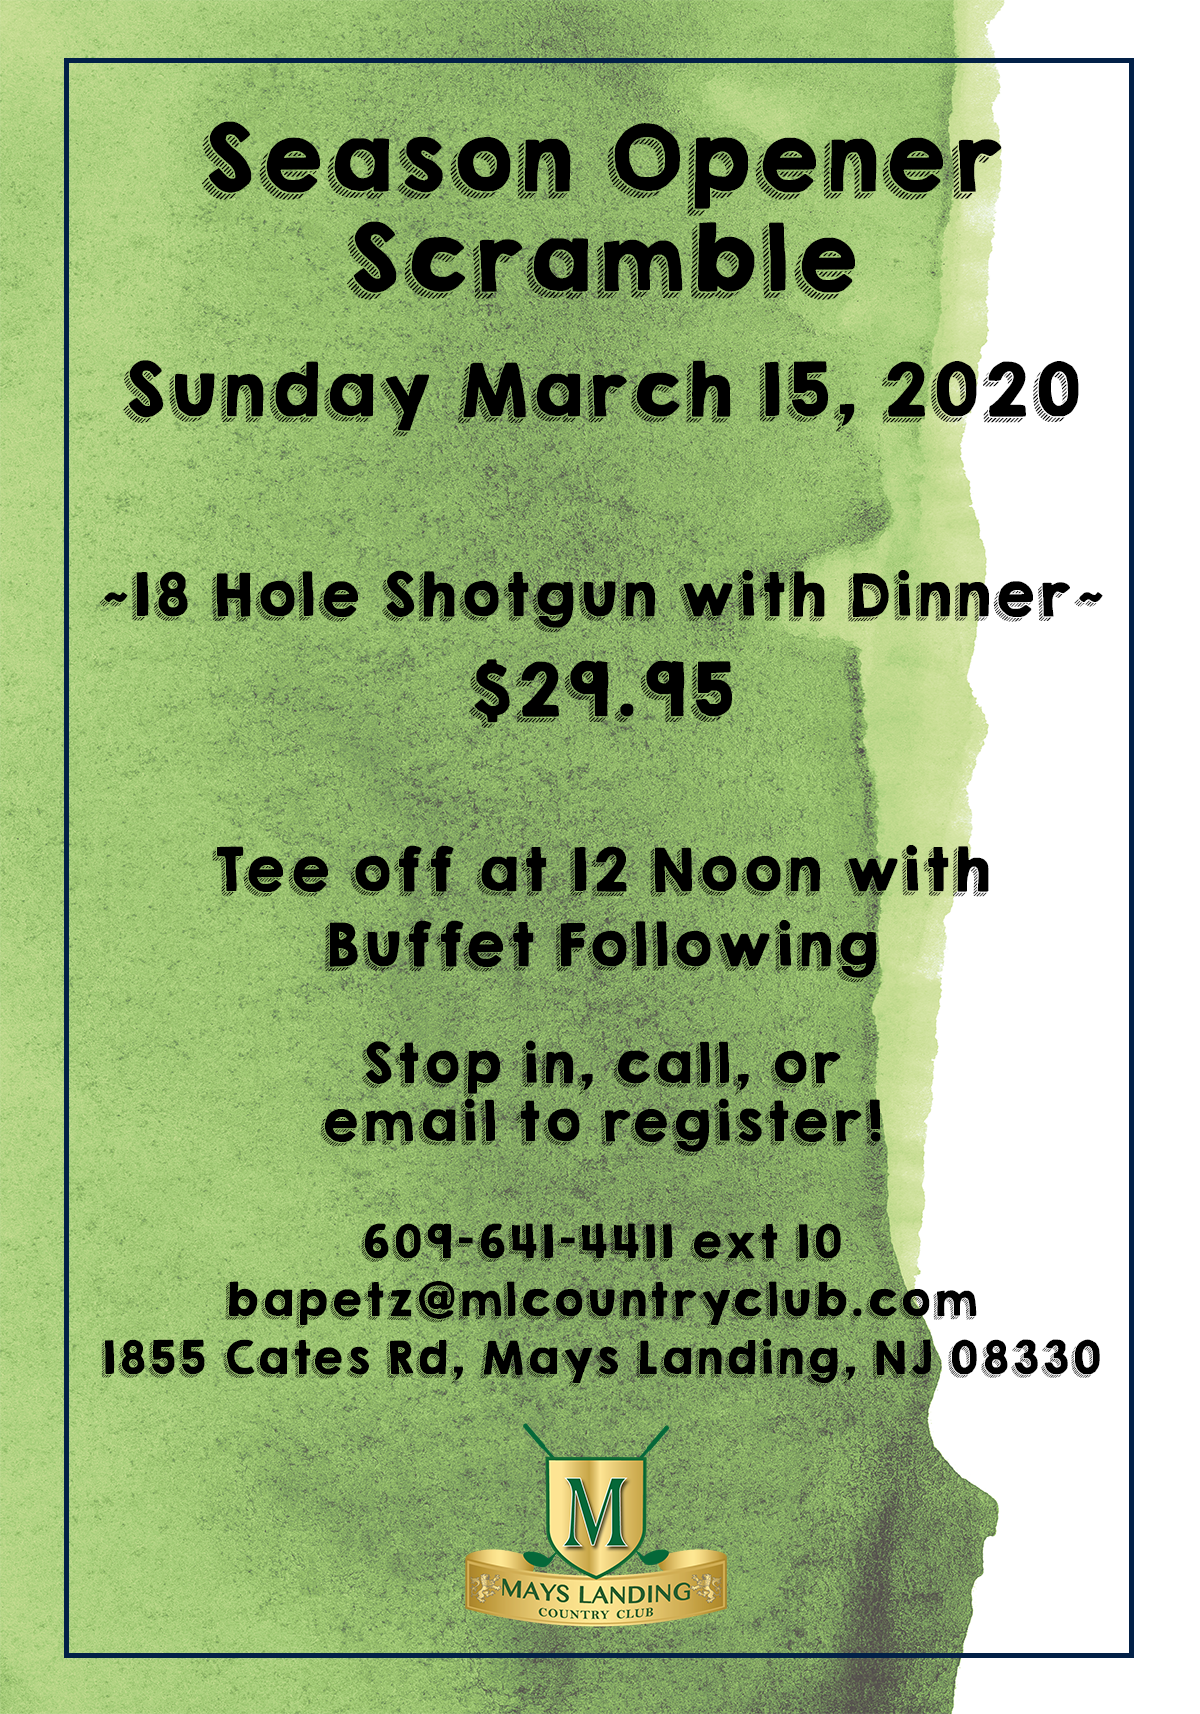 Season Opener Scramble Sunday March 15, 2020  ~18 Hole Shotgun with Dinner~ $29.95  Tee off at 12 Noon with Buffet Following Stop in, call, or email to register! 609-641-4411 ext 10 bapetz@mlcountryclub.com 1855 Cates Rd, Mays Landing, NJ 08330